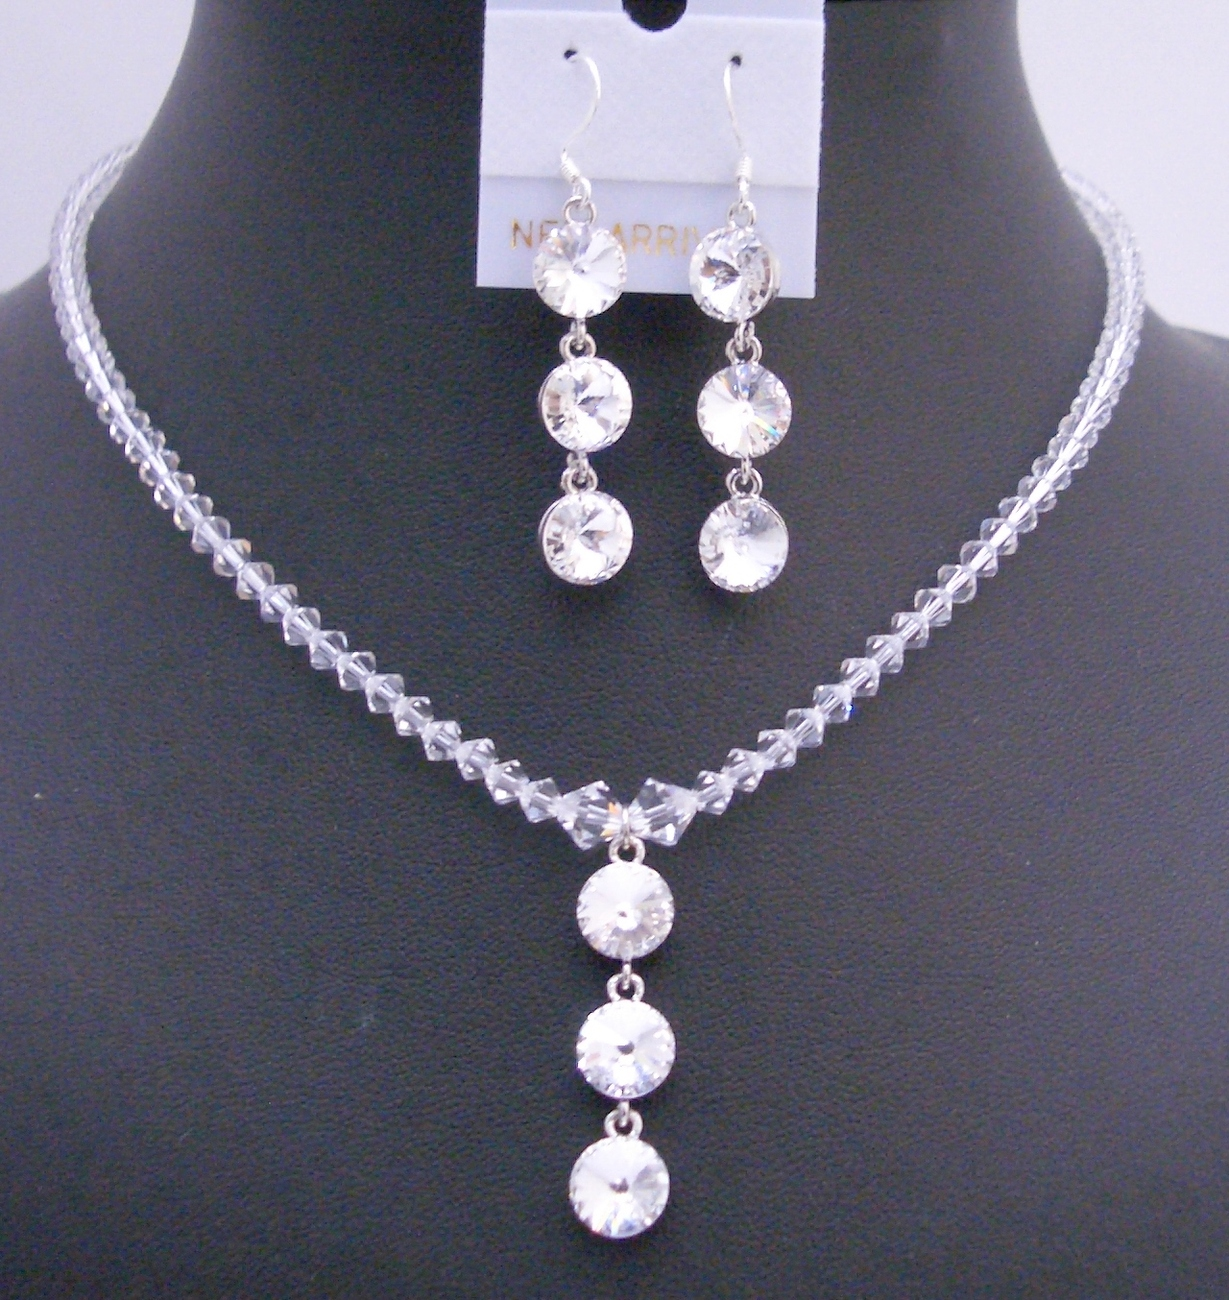 Primary image for Drop Down Pendant Necklace Swarovski Clear Crystals Handmade Jewelry